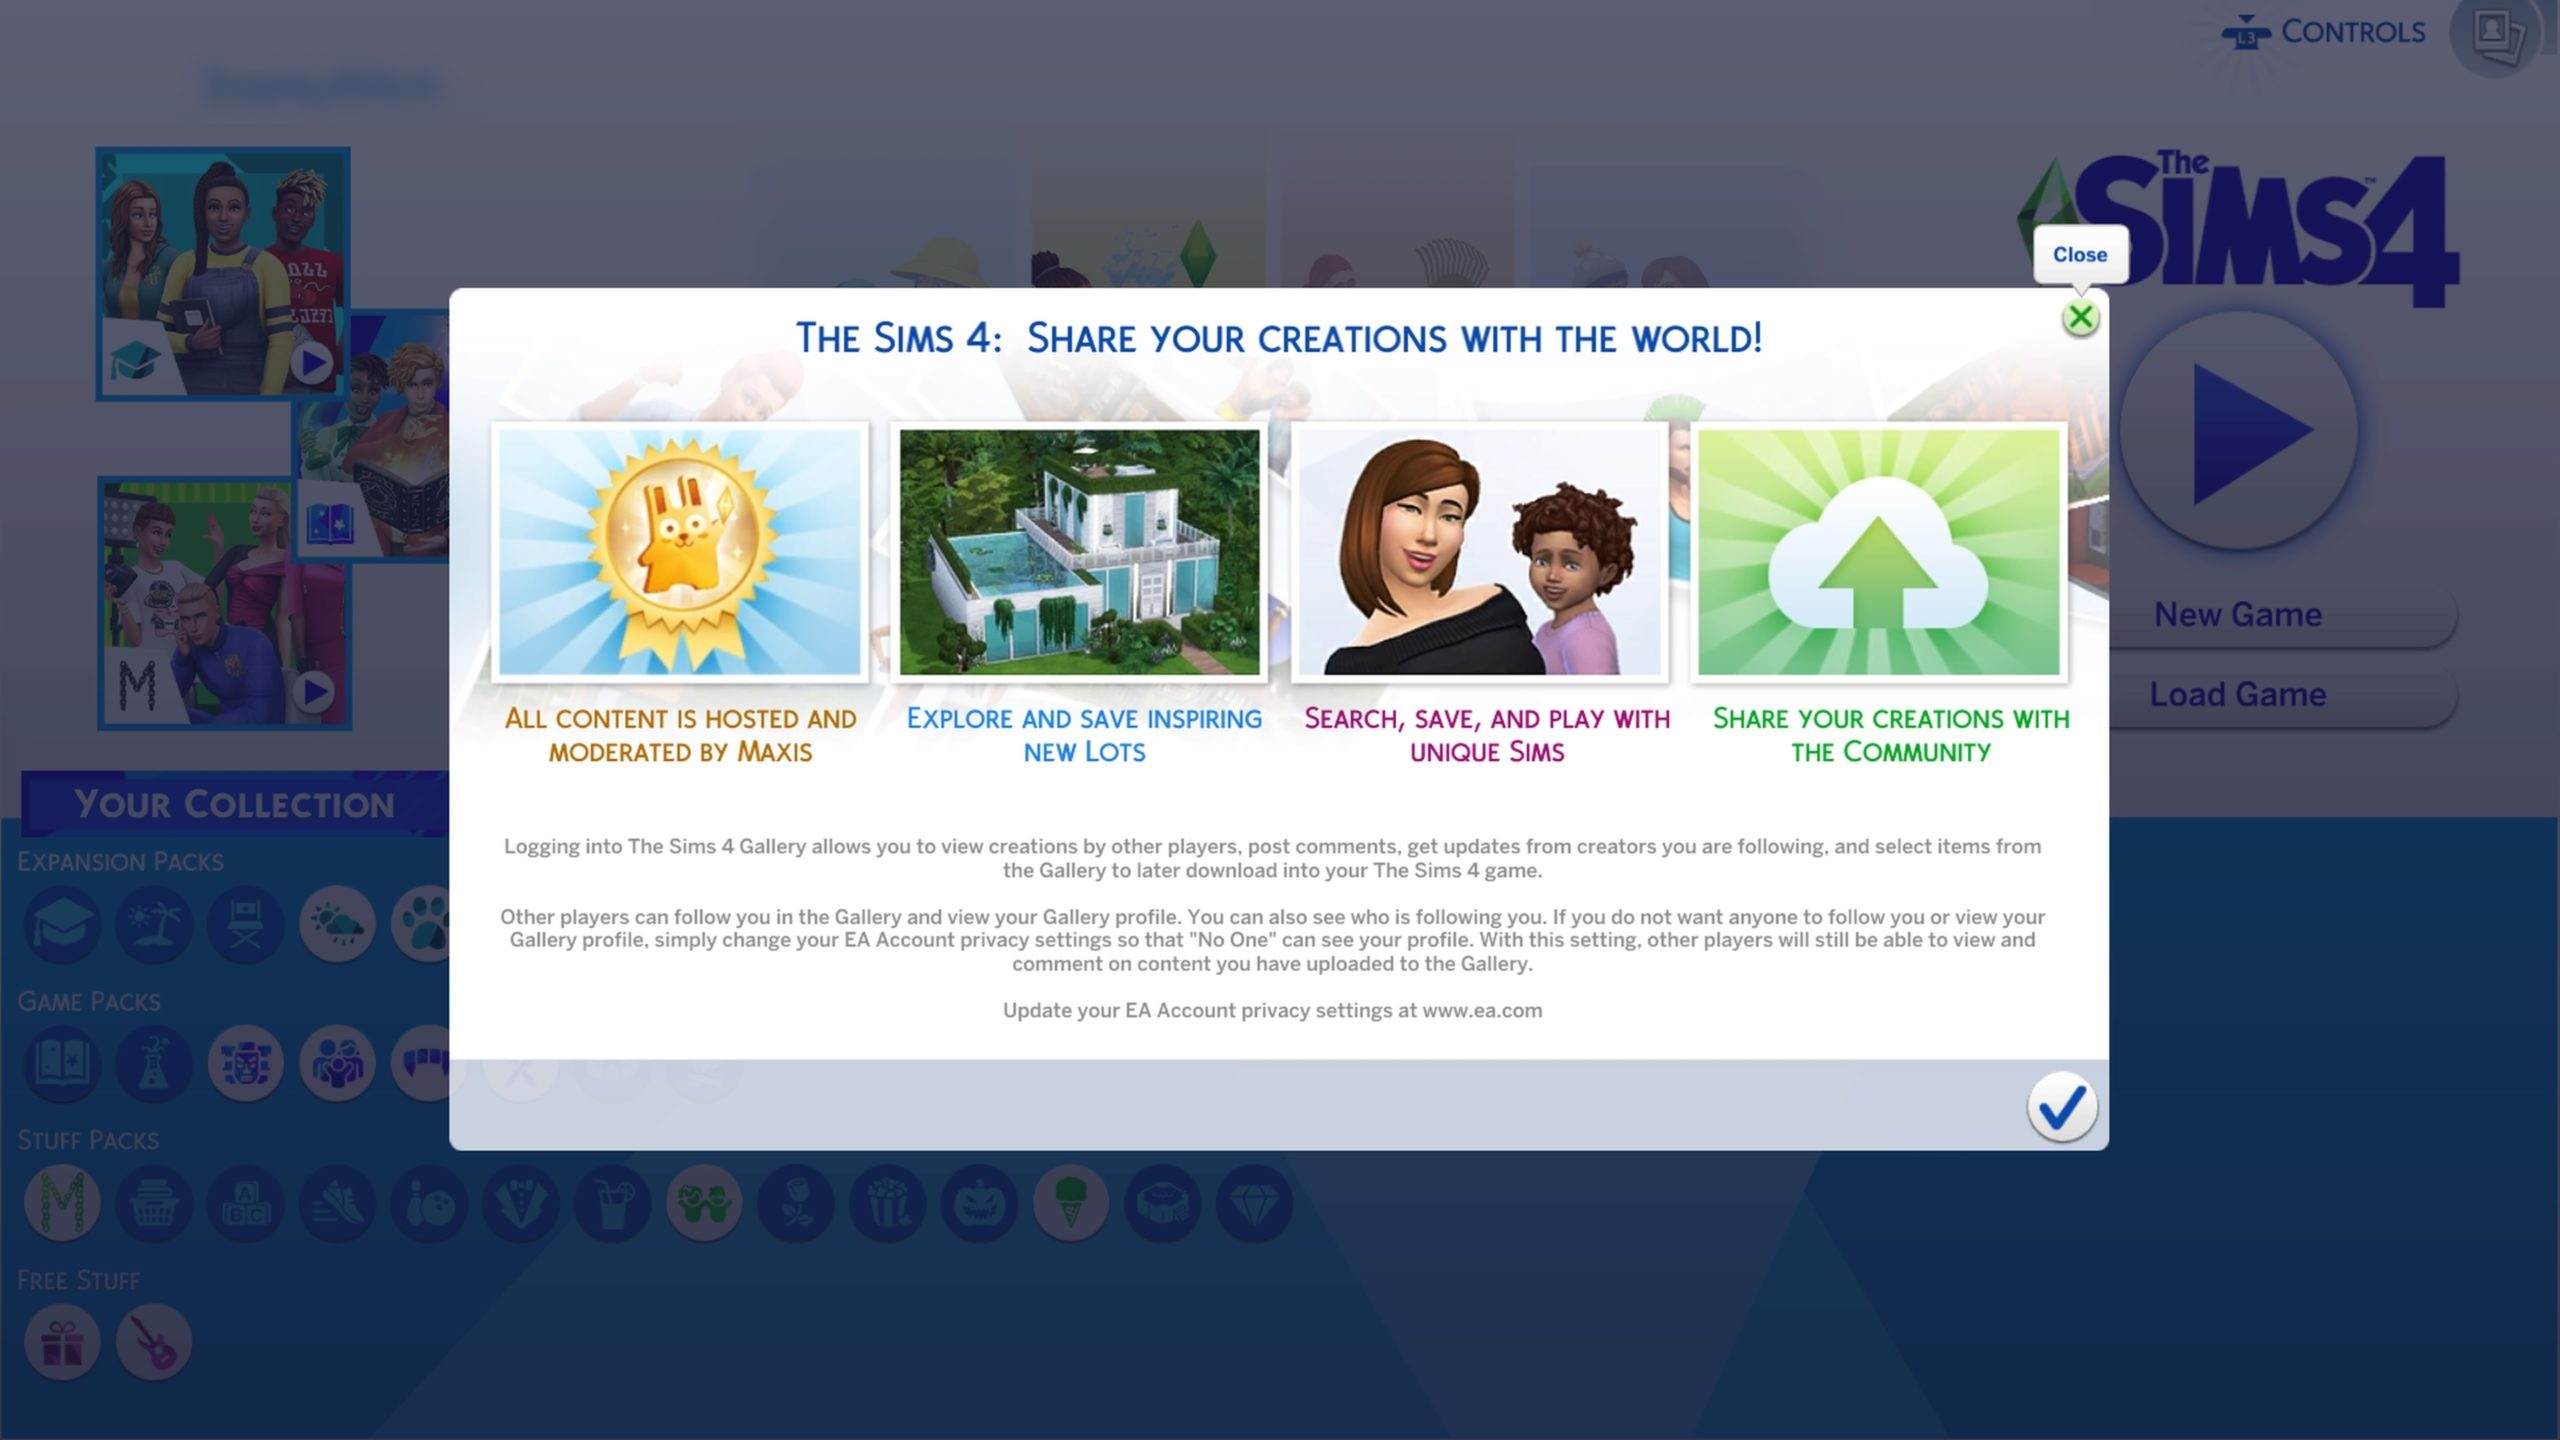 The Sims 4 Console: Welcome To The Gallery! throughout Sims 4 Icons 2020